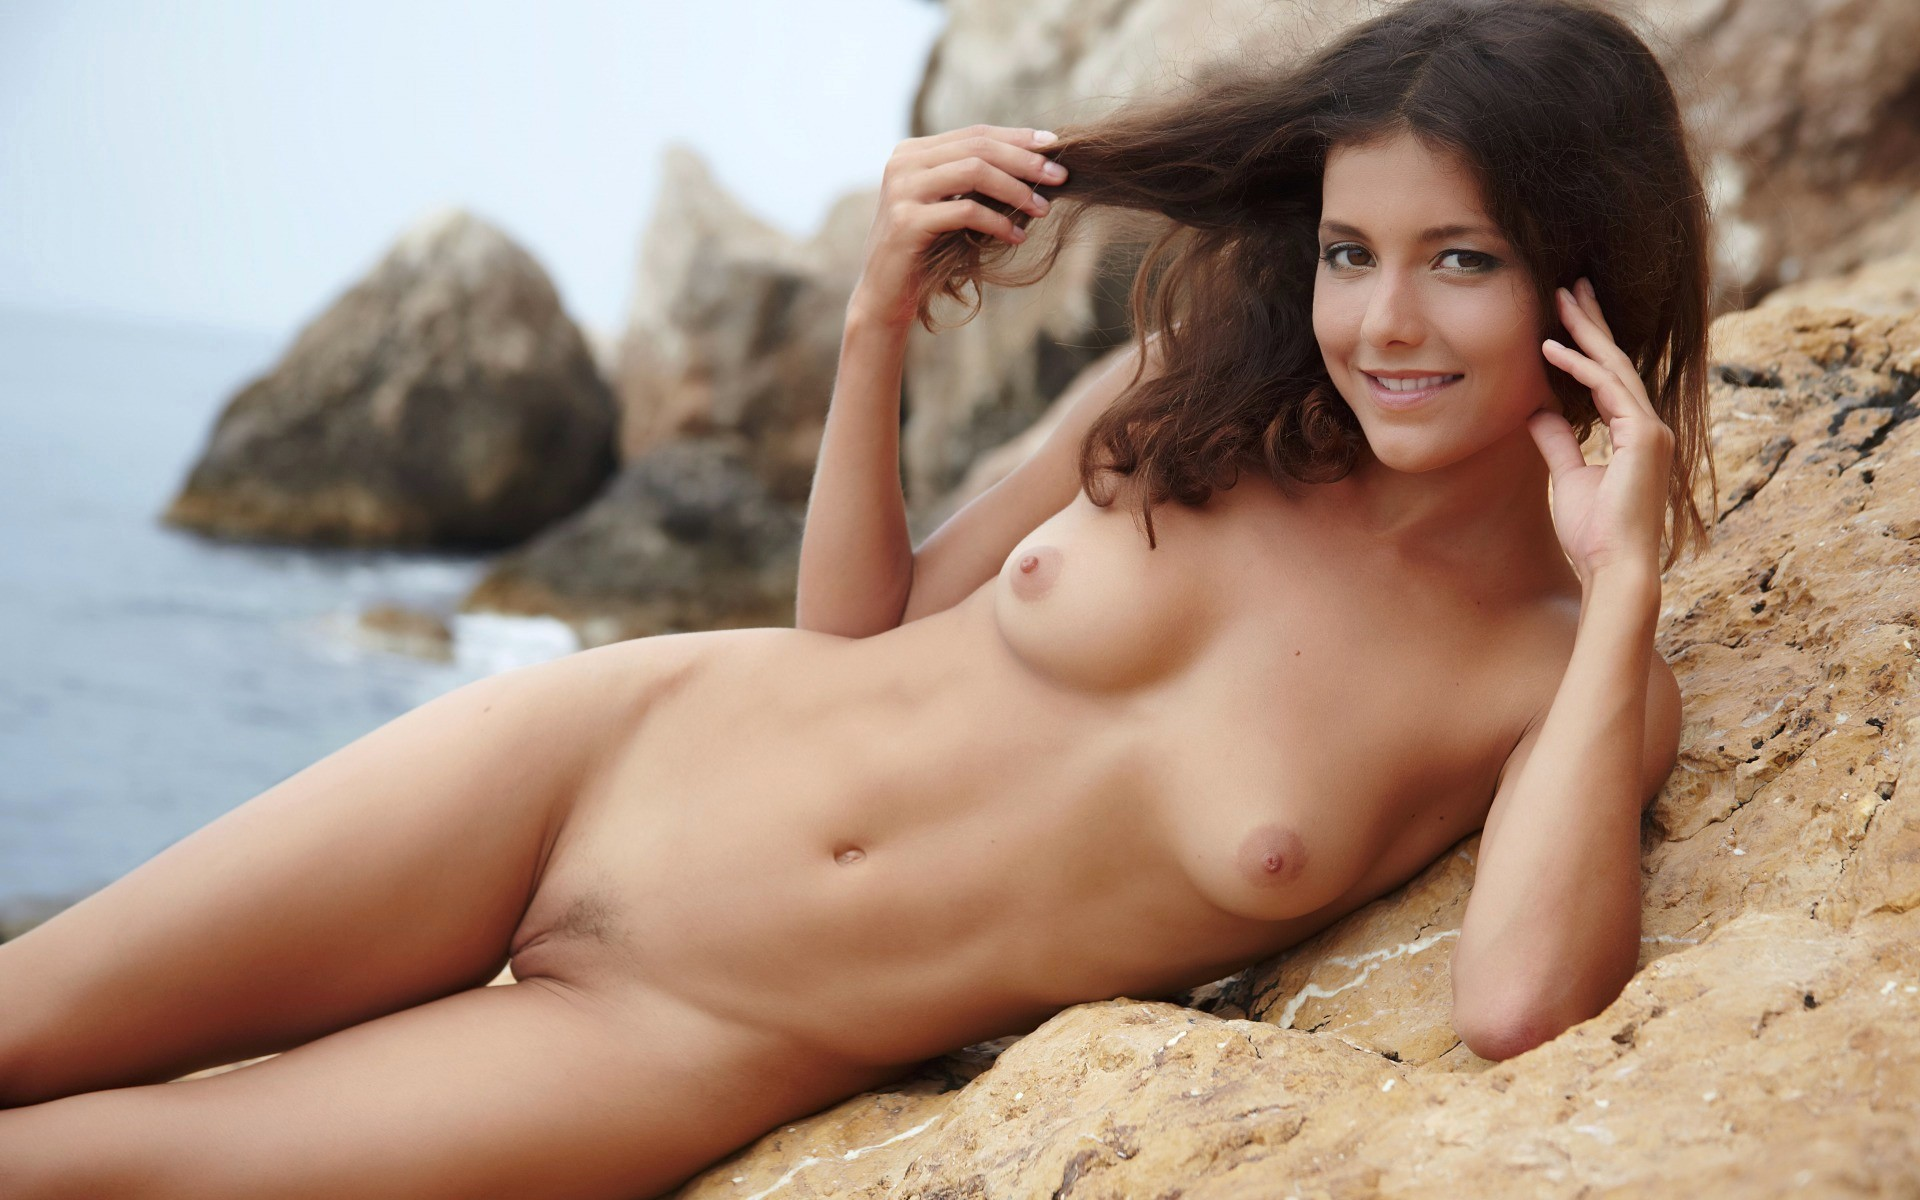 photos-of-nude-girl